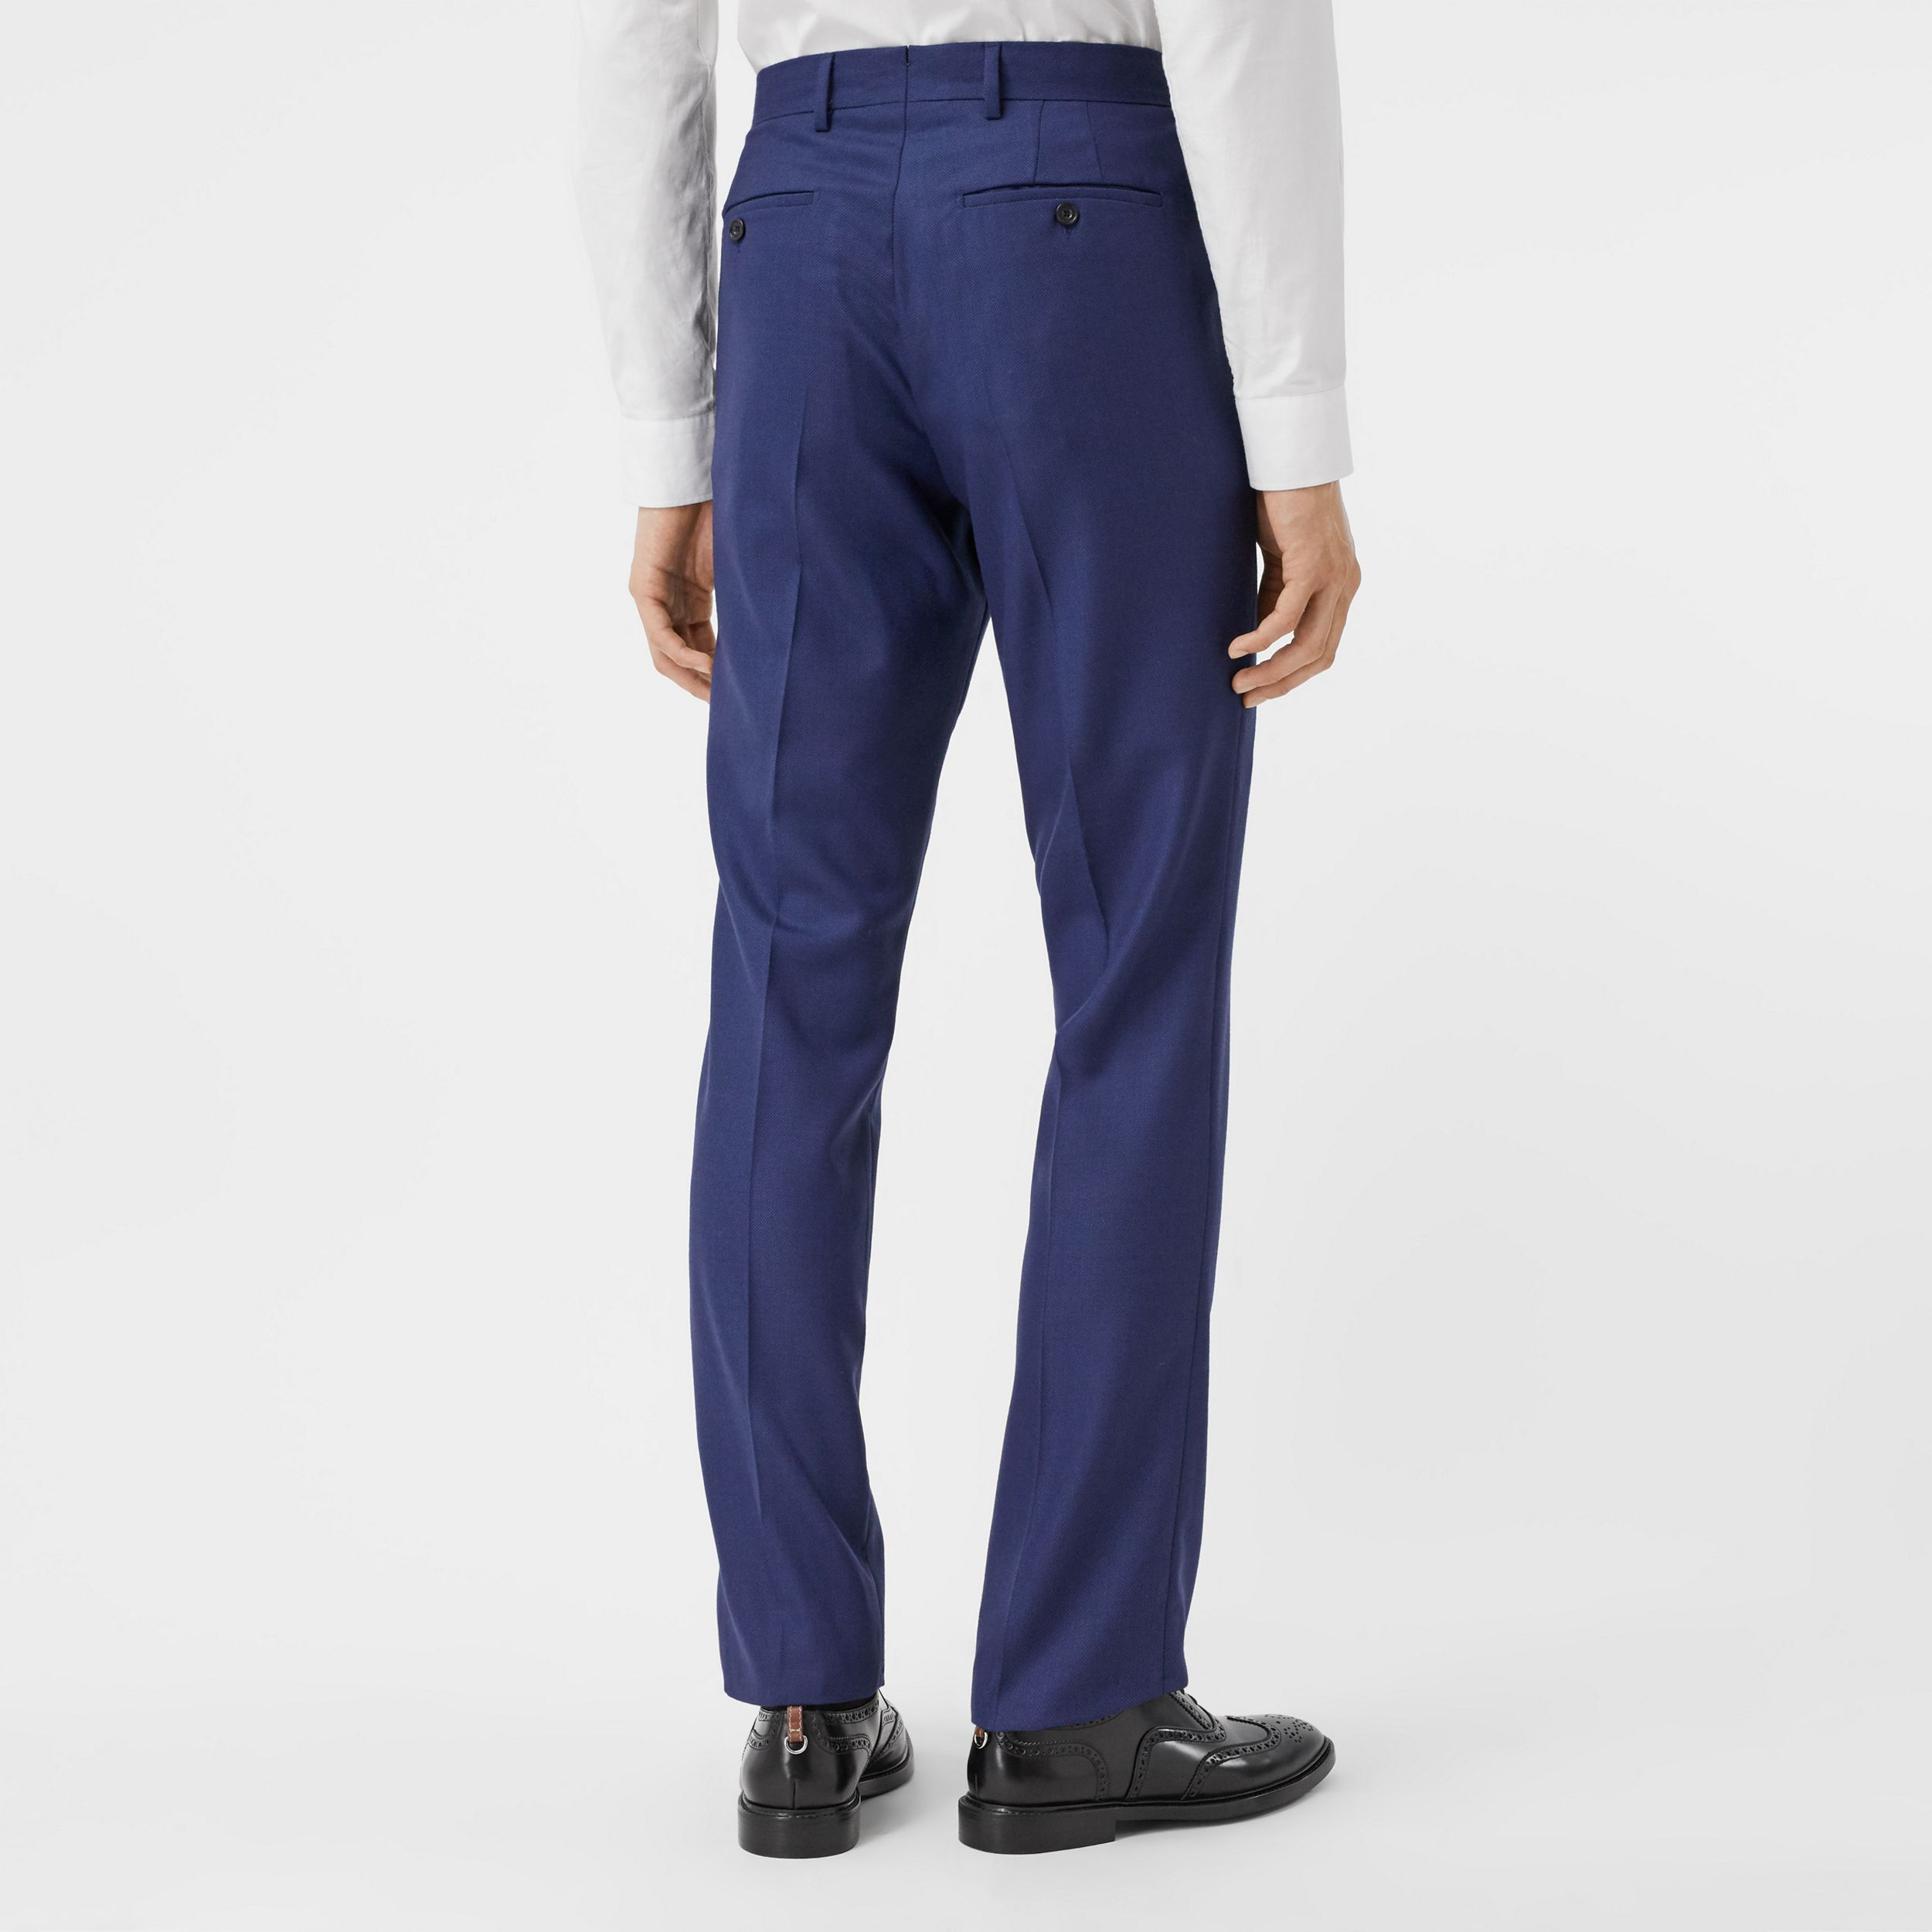 Classic Fit Birdseye Wool Tailored Trousers in Bright Navy - Men | Burberry - 3